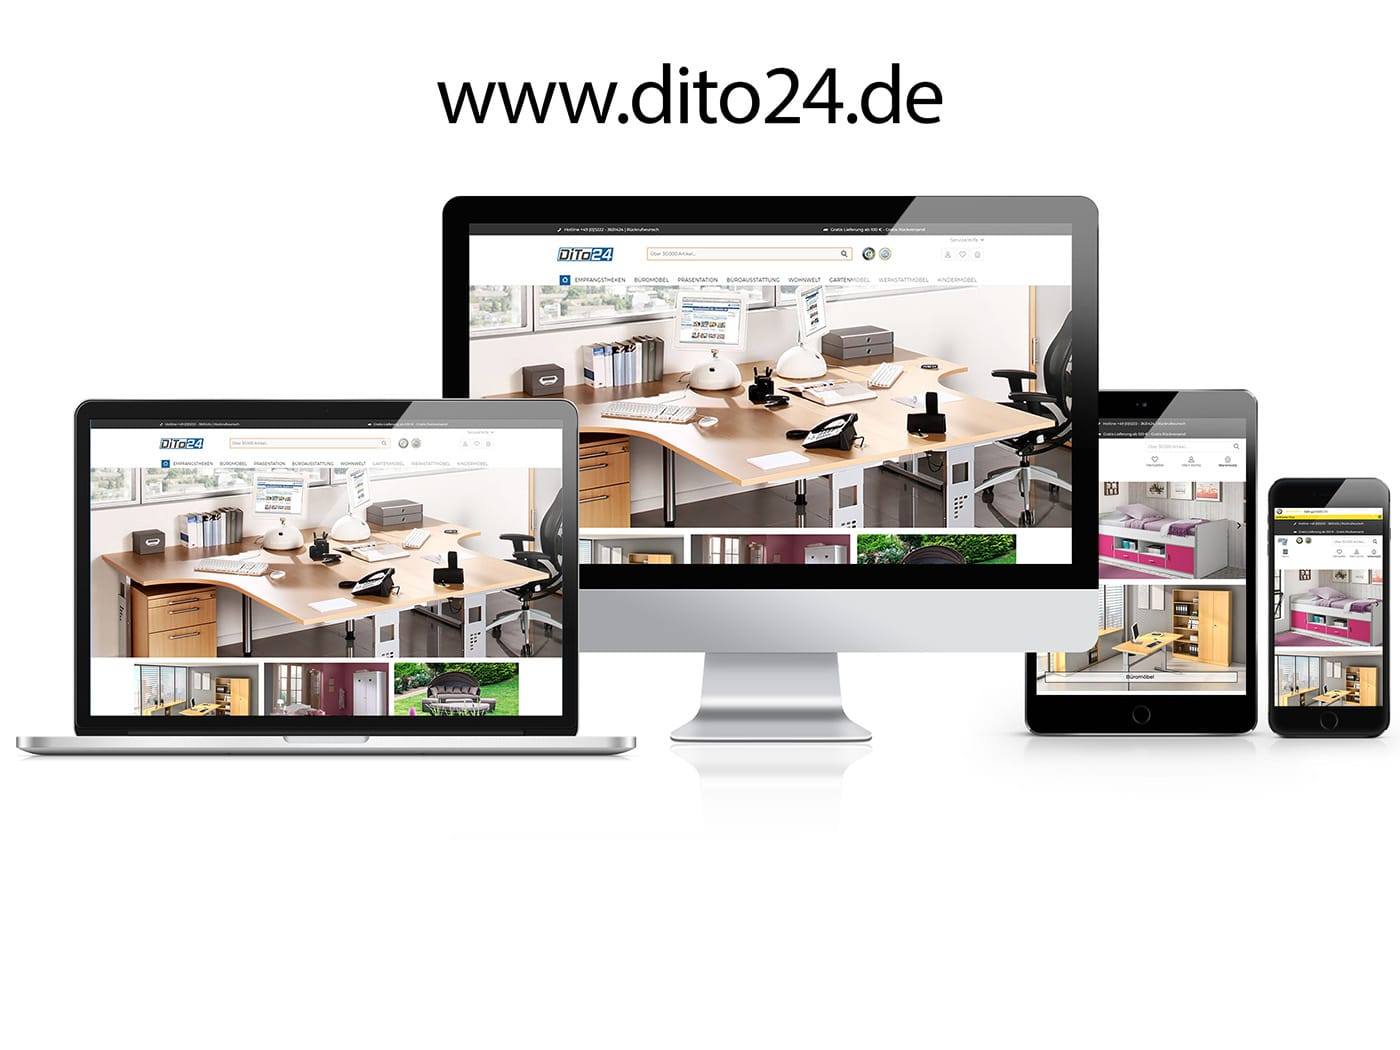 DiTo24 Onlineshop by die codedesigner